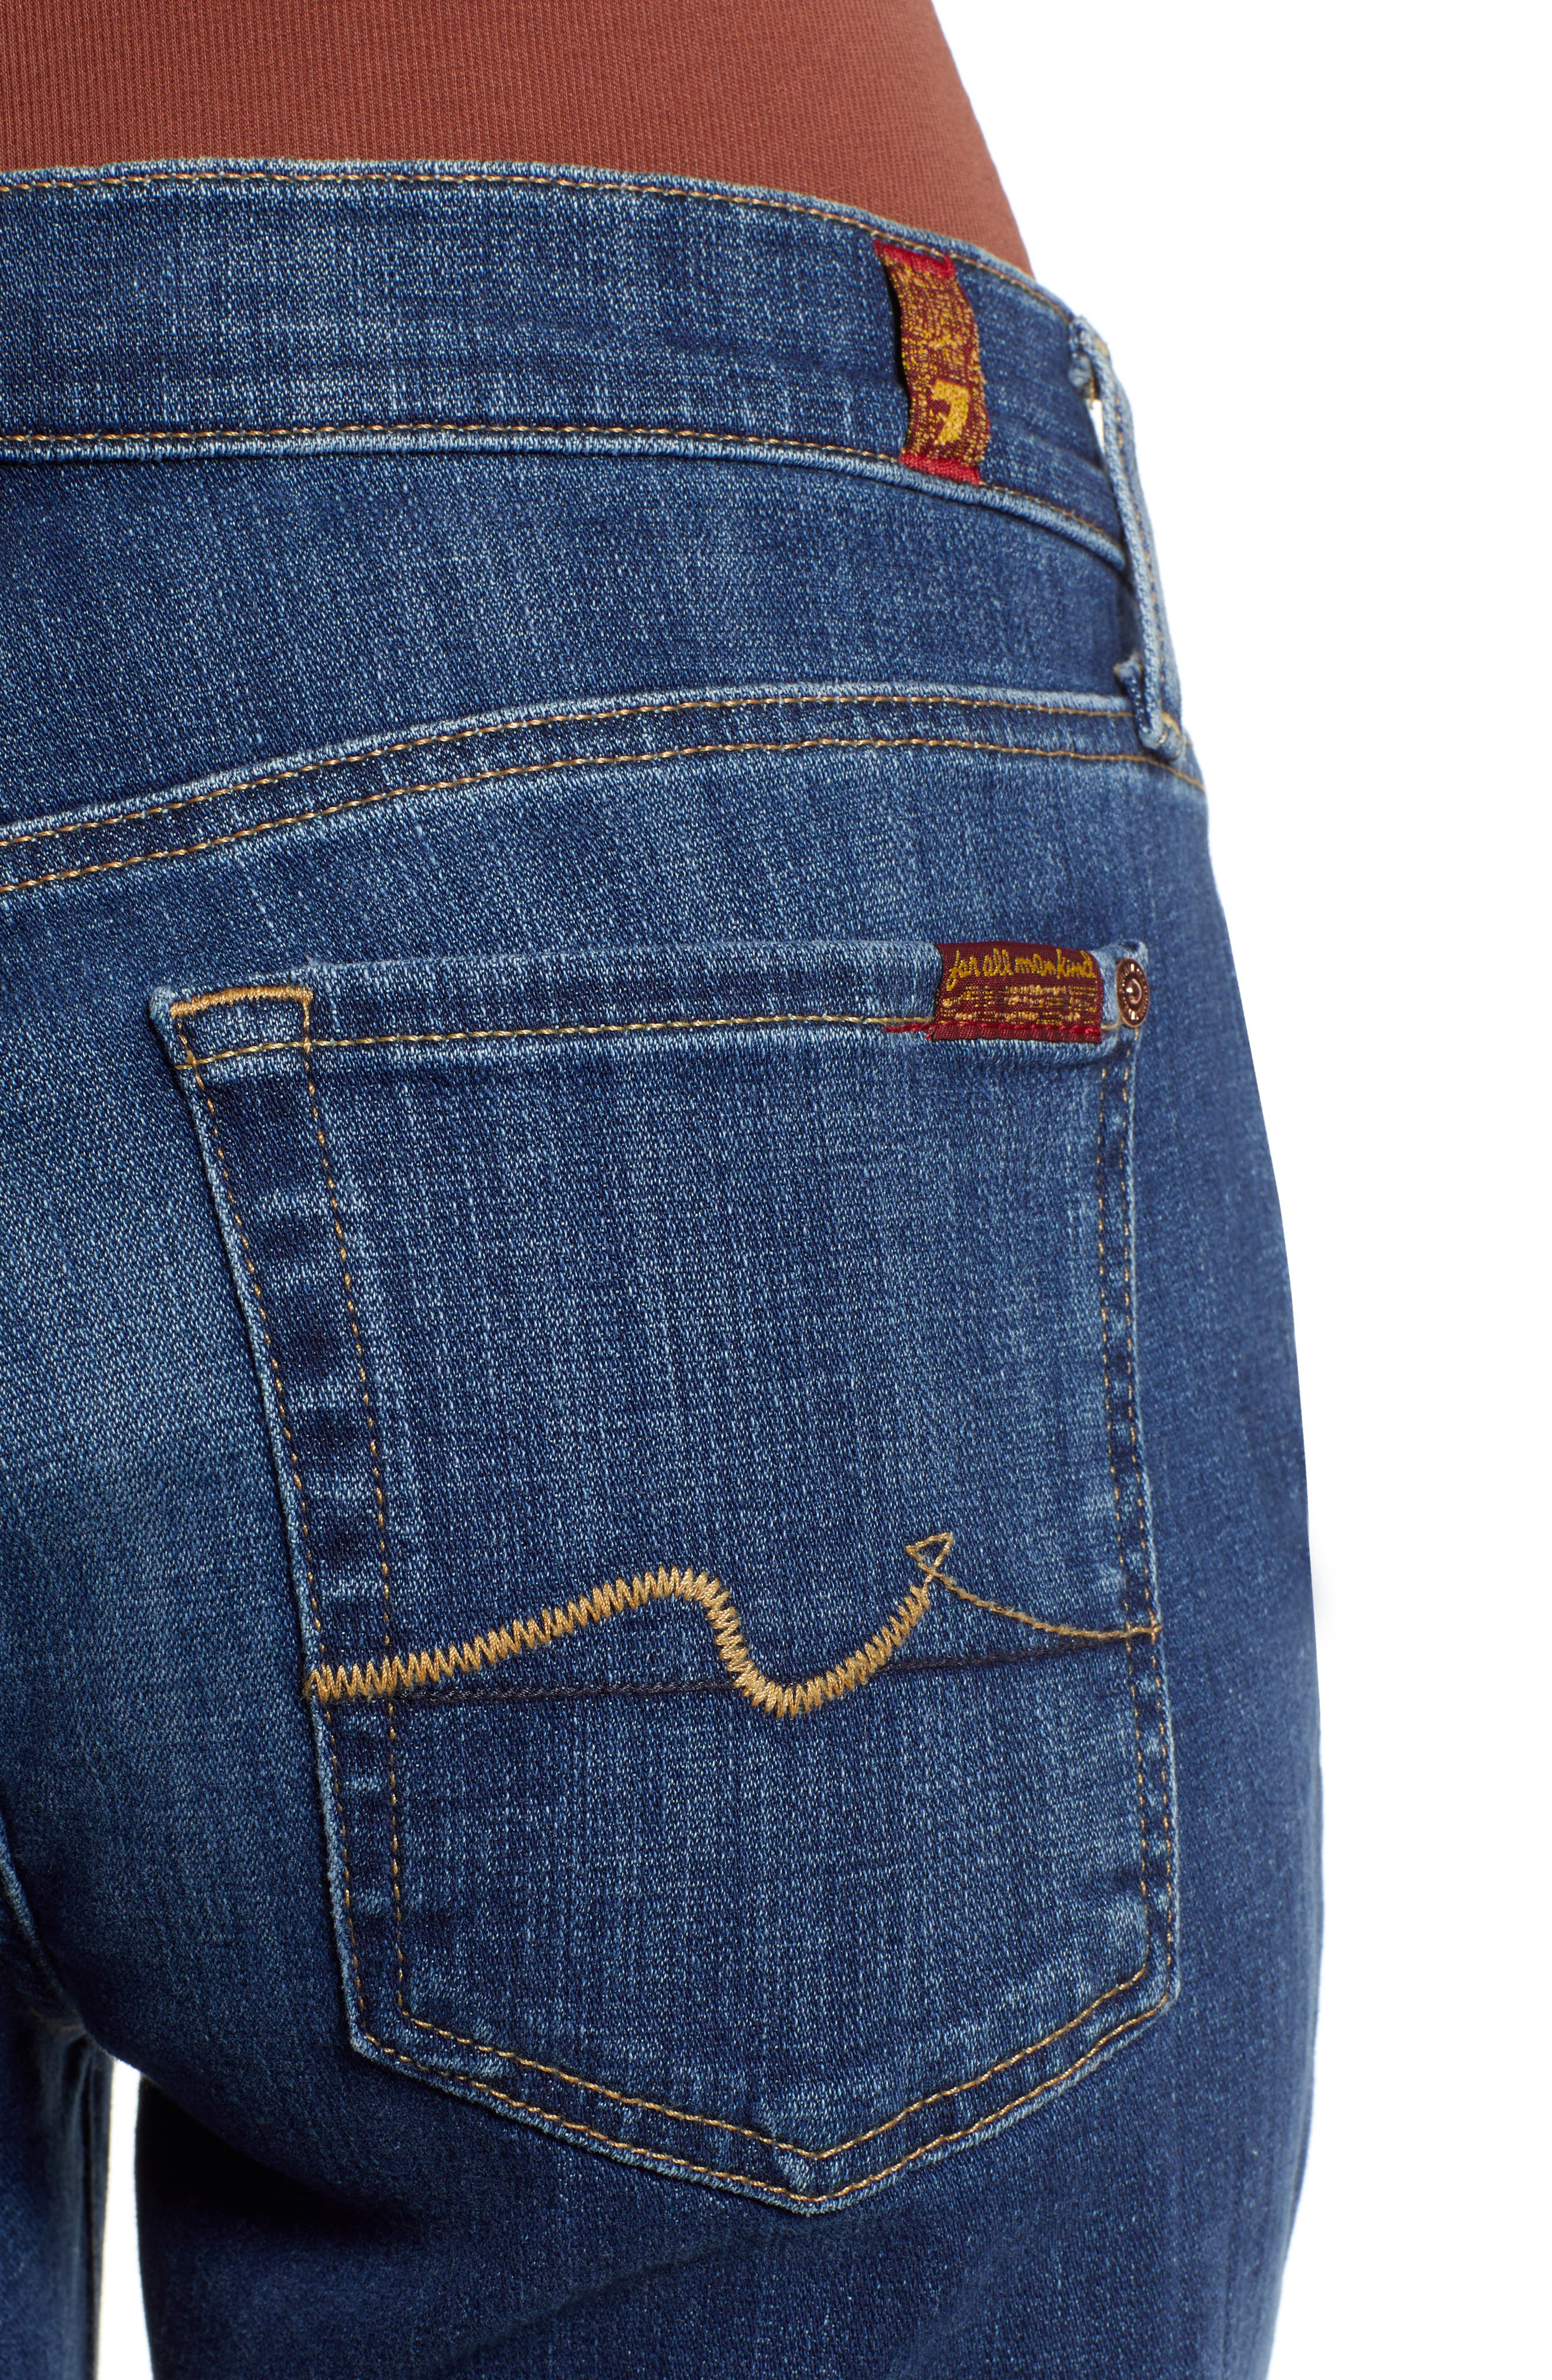 7 FOR ALL MANKIND<SUP>®</SUP>, Josefina Ankle Boyfriend Jeans, Alternate thumbnail 5, color, BROKEN TWILL VANITY CLEAN